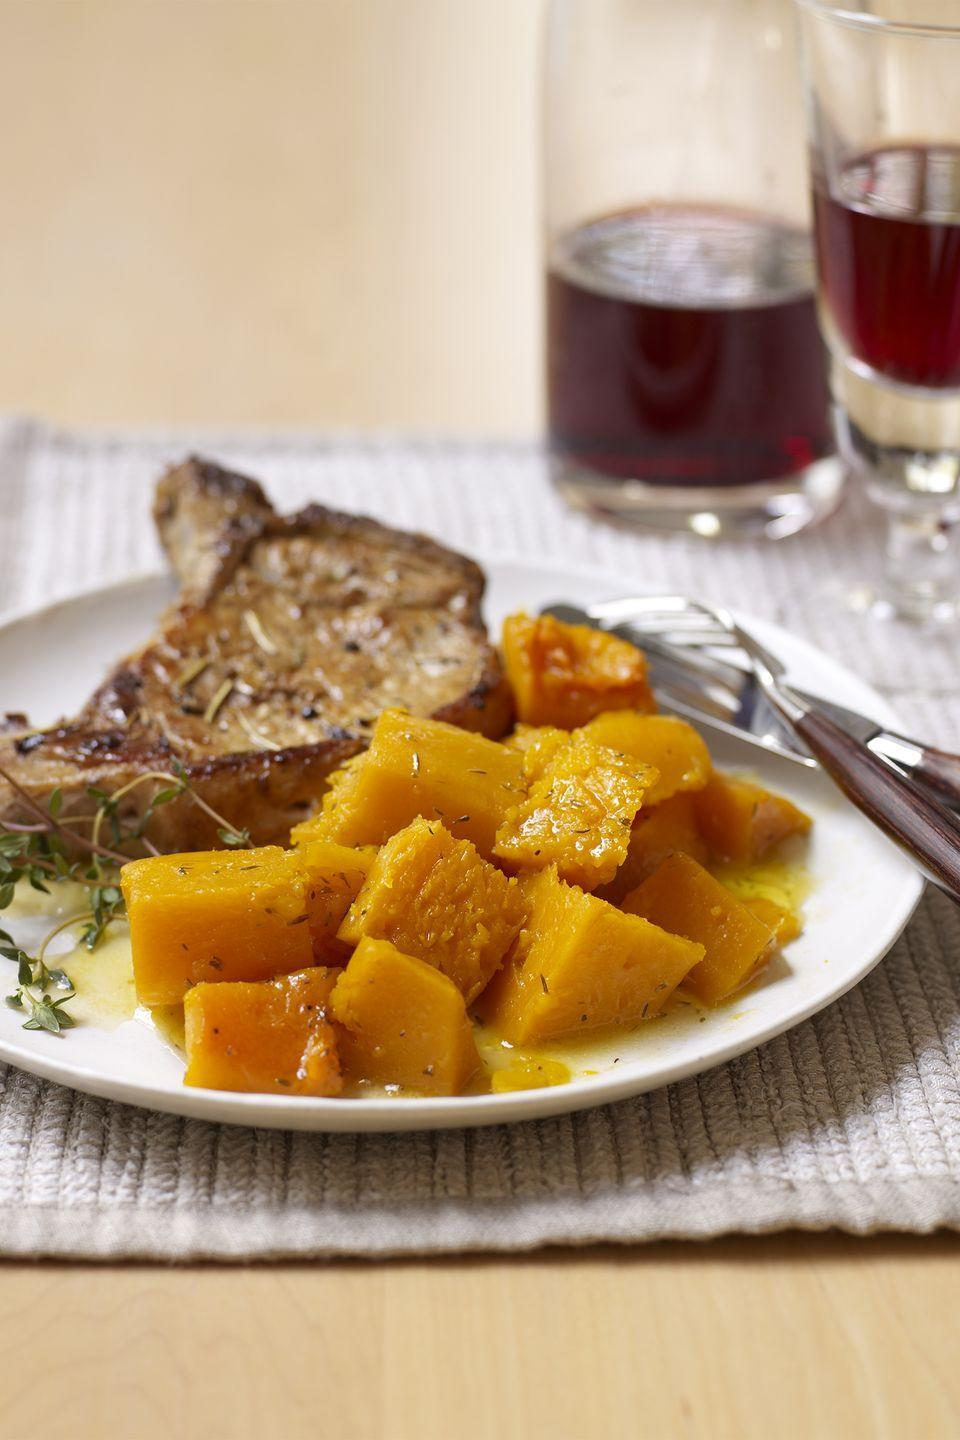 """<p>Anjou pears add a sweetness to this savory lager-beer braised pork chop dinner. </p><p><strong><a href=""""https://www.countryliving.com/food-drinks/recipes/a3010/beer-braised-pork-chops-recipe/"""" rel=""""nofollow noopener"""" target=""""_blank"""" data-ylk=""""slk:Get the recipe"""" class=""""link rapid-noclick-resp"""">Get the recipe</a>.</strong></p>"""